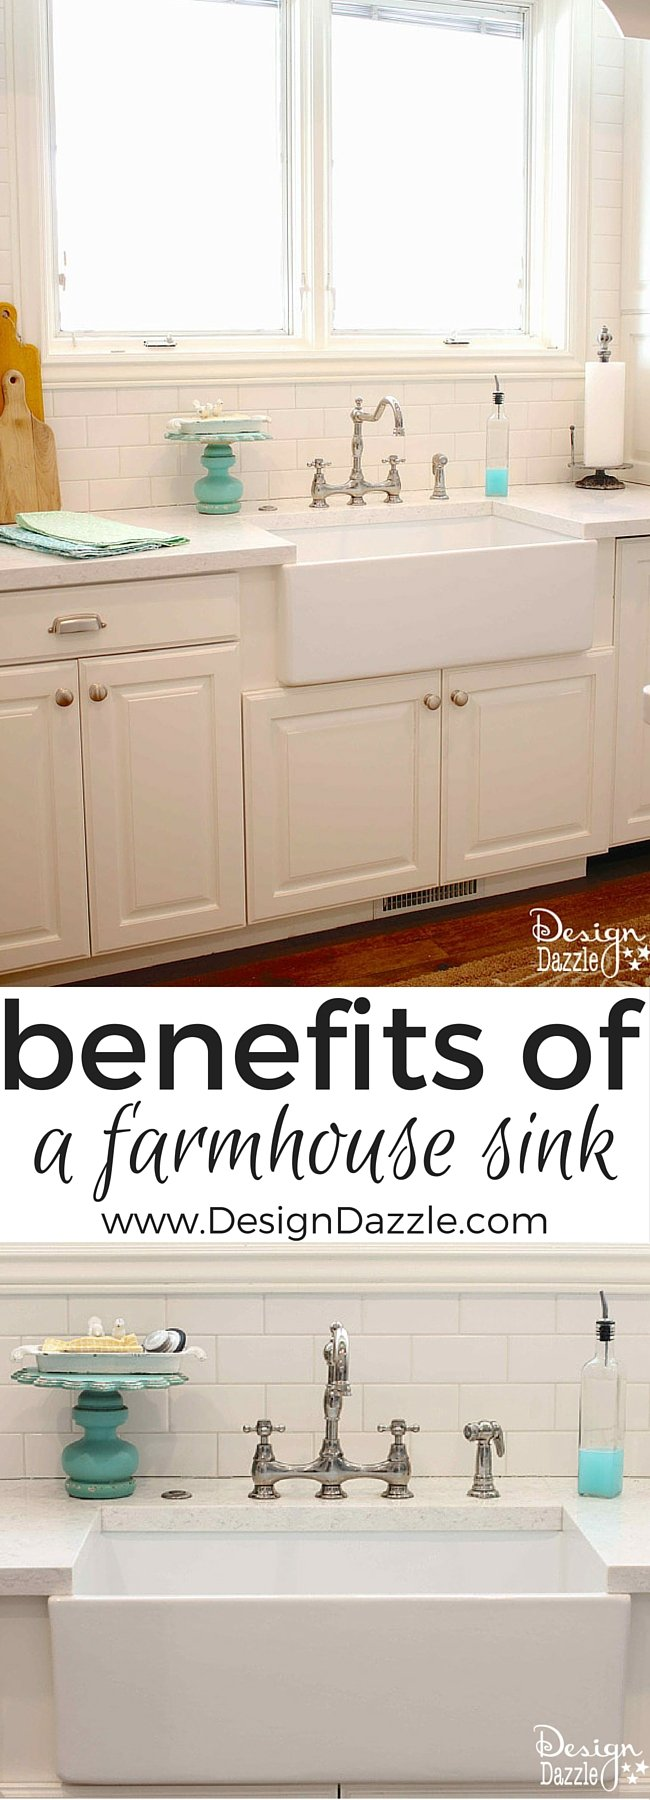 Benefits of a Farmhouse Sink - what about depth, stain resistant, chipping, installation? Find out the details at www.DesignDazzle.com